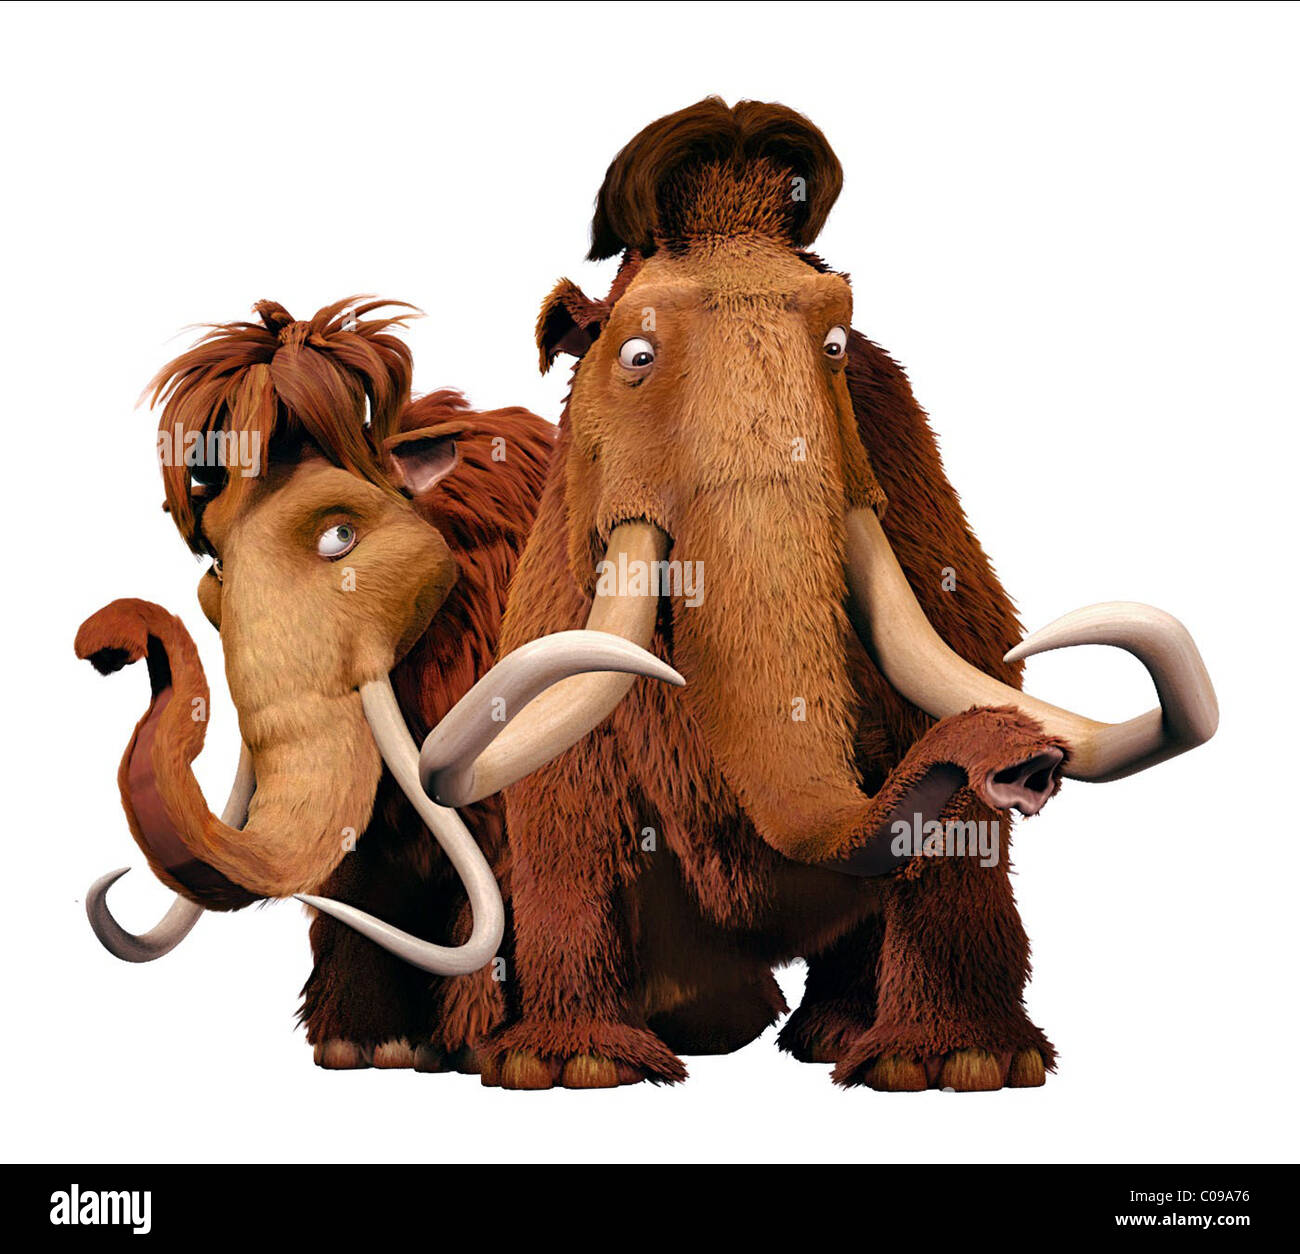 MANNY, Ellie, ICE AGE: DAWN OF THE DINOSAURS, 2009 Banque D'Images